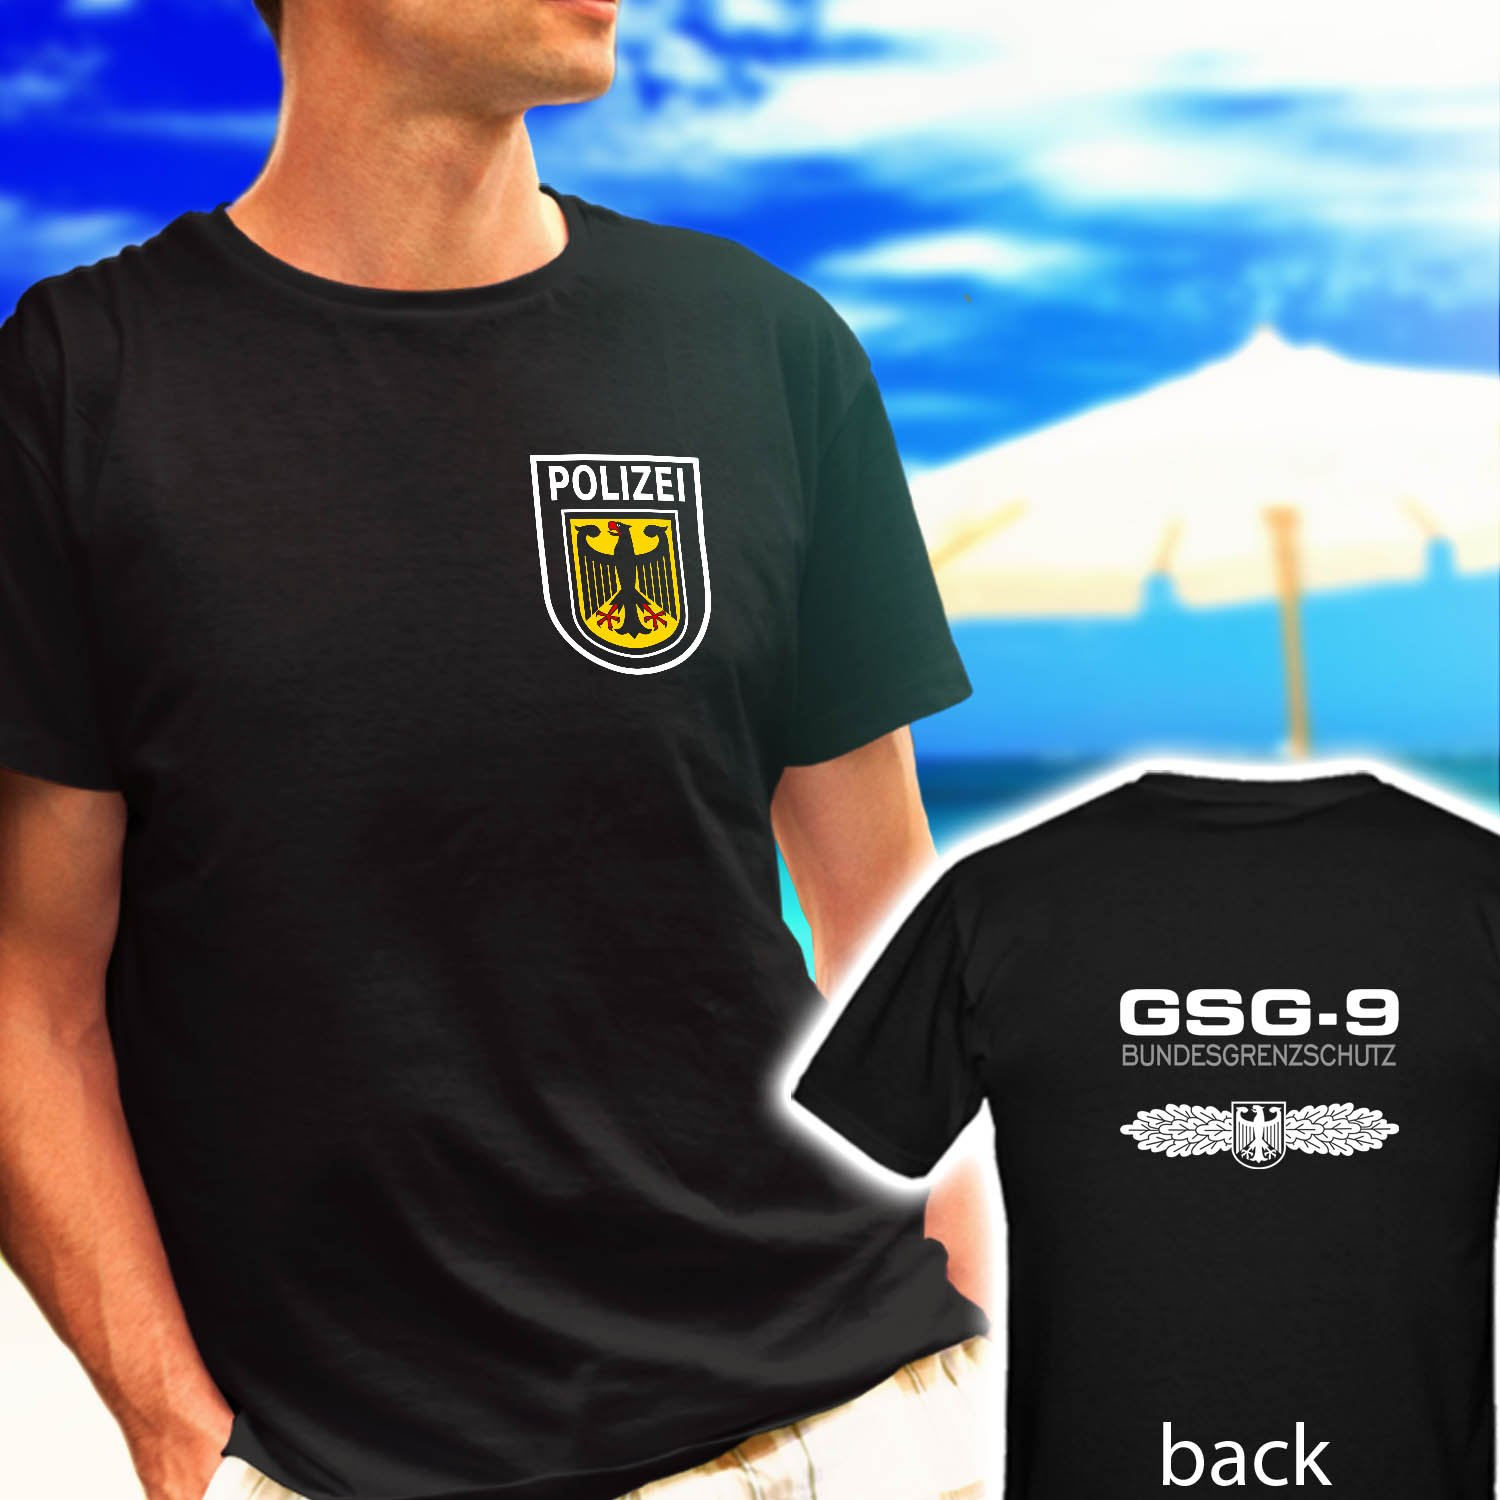 GSG 9 Germany swat Counter Terrorism Special Operations Unit black t-shirt tshirt shirts tee SIZE XL